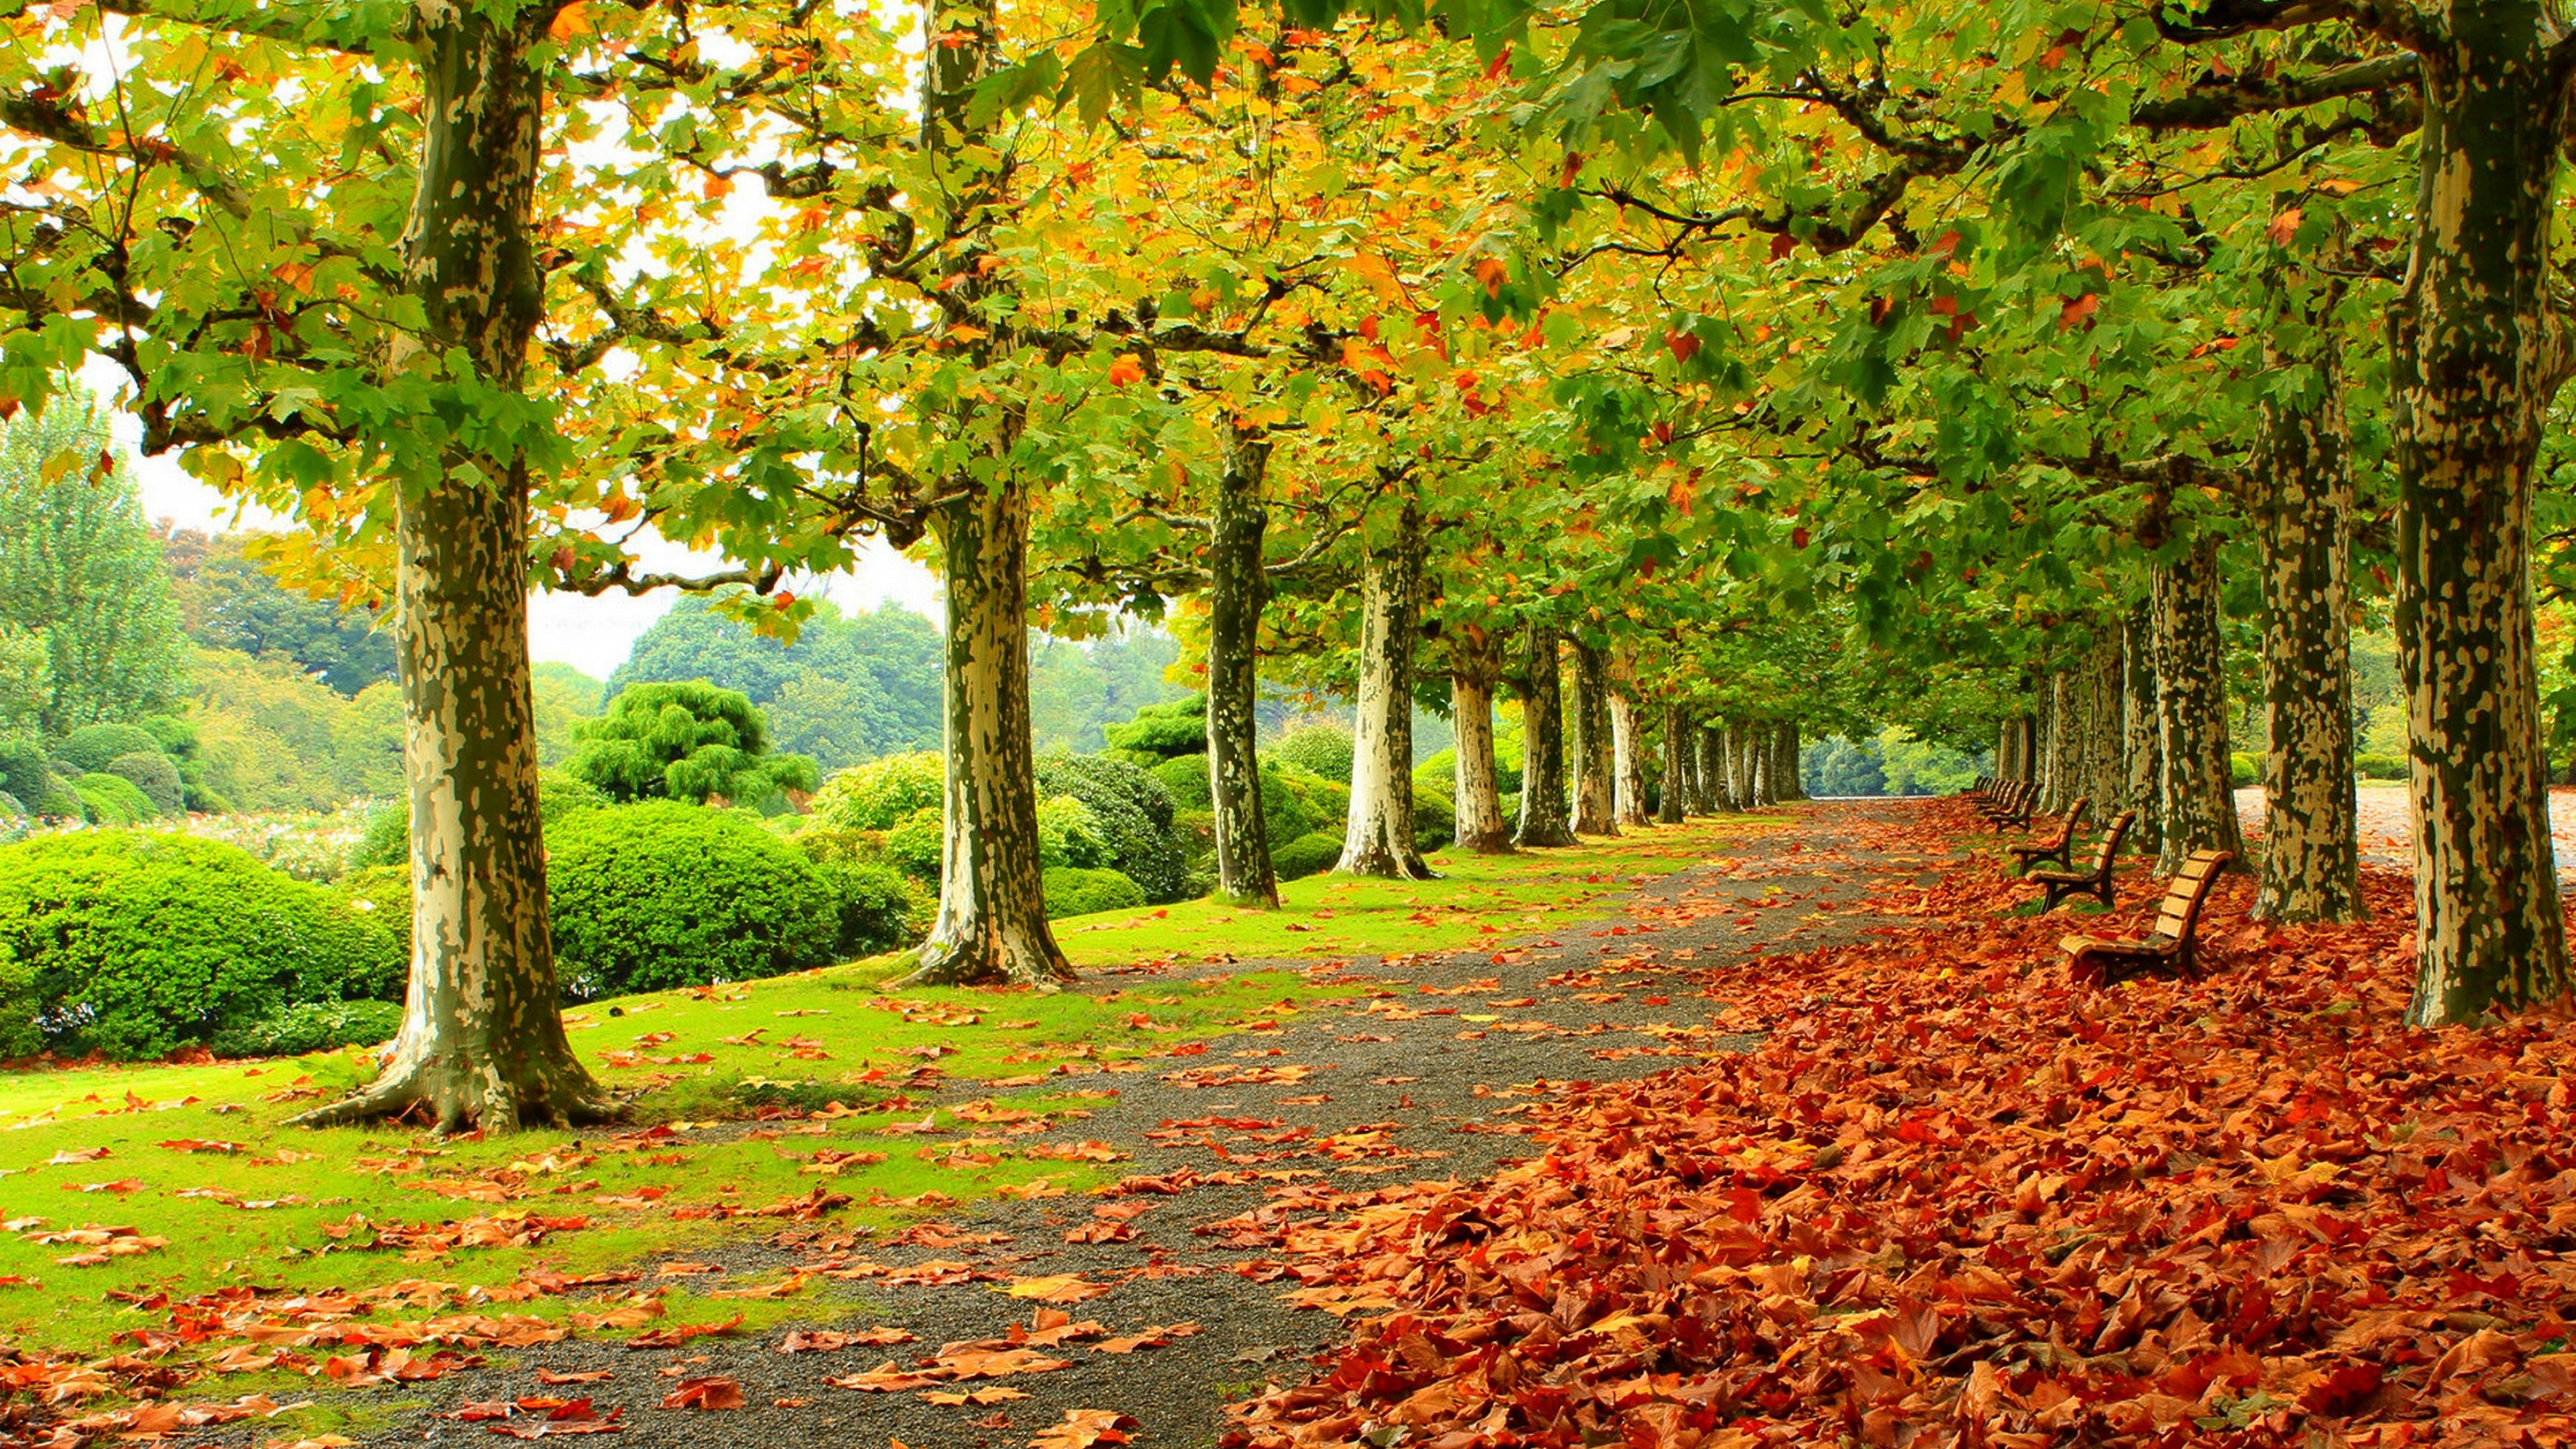 Fall Wallpaper Iphone 6 照片 Park 4k Fall Leaf Bench Alley 桌布